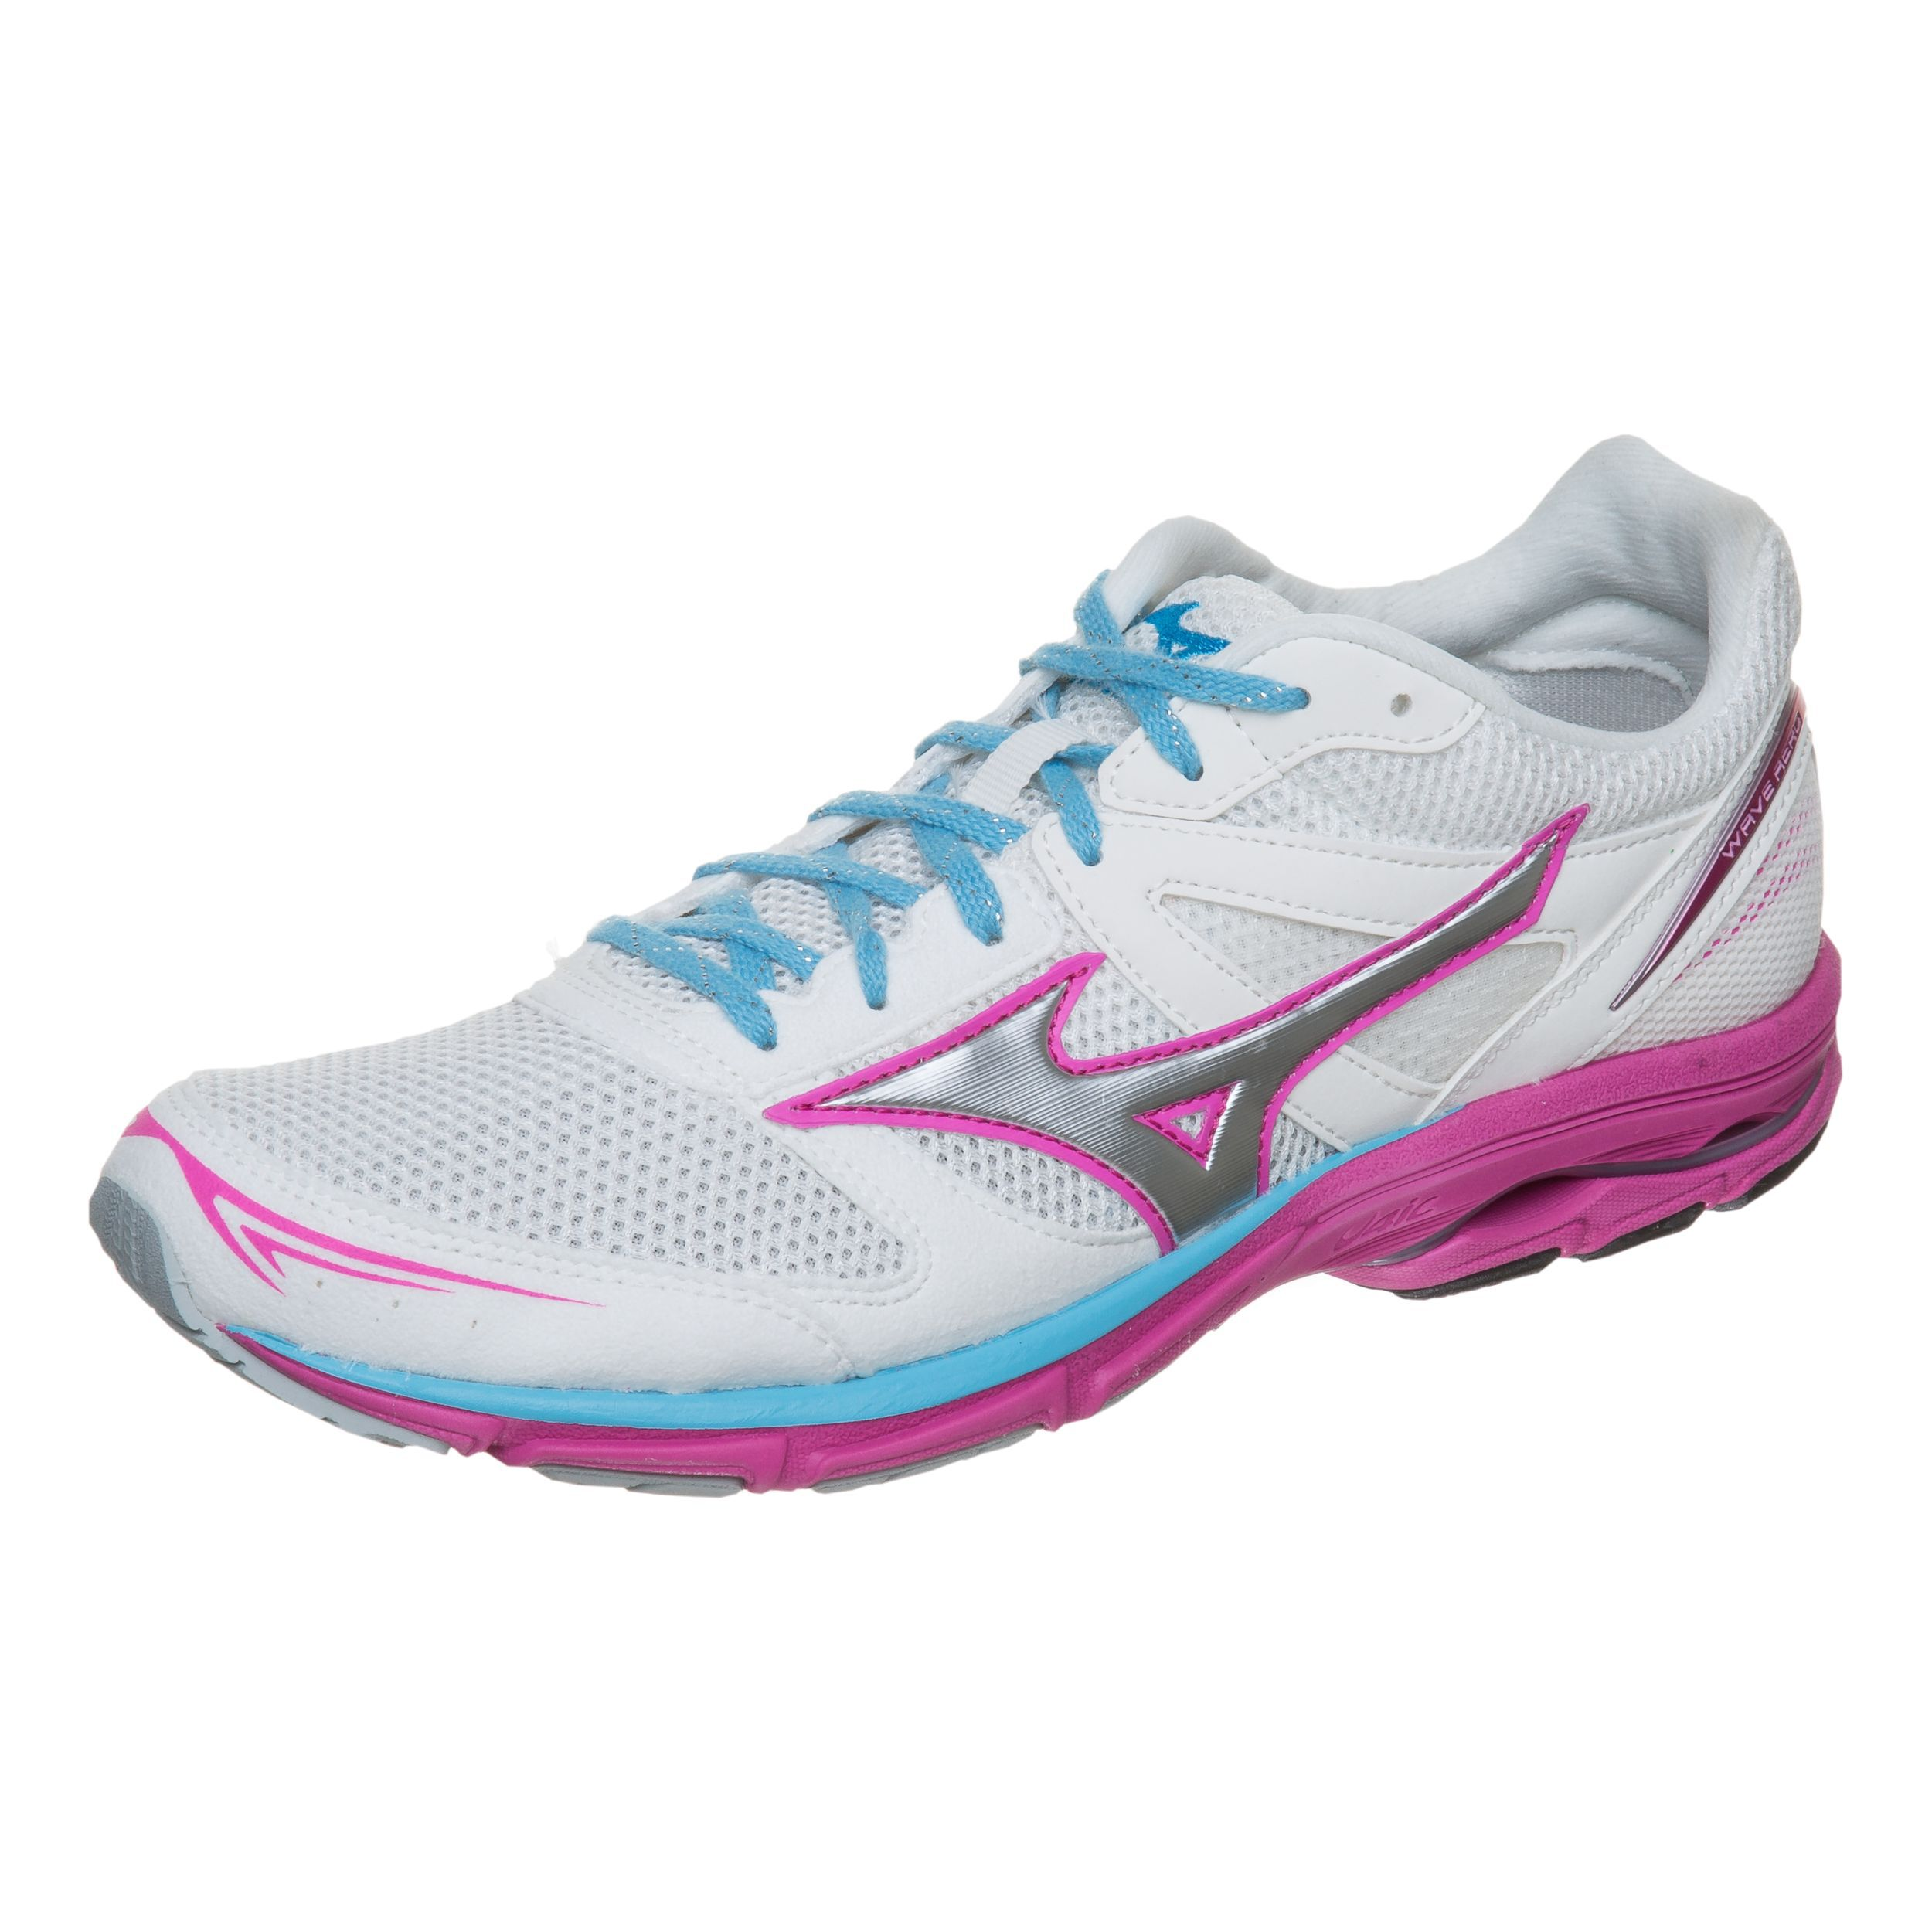 mizuno wave aero 9 white